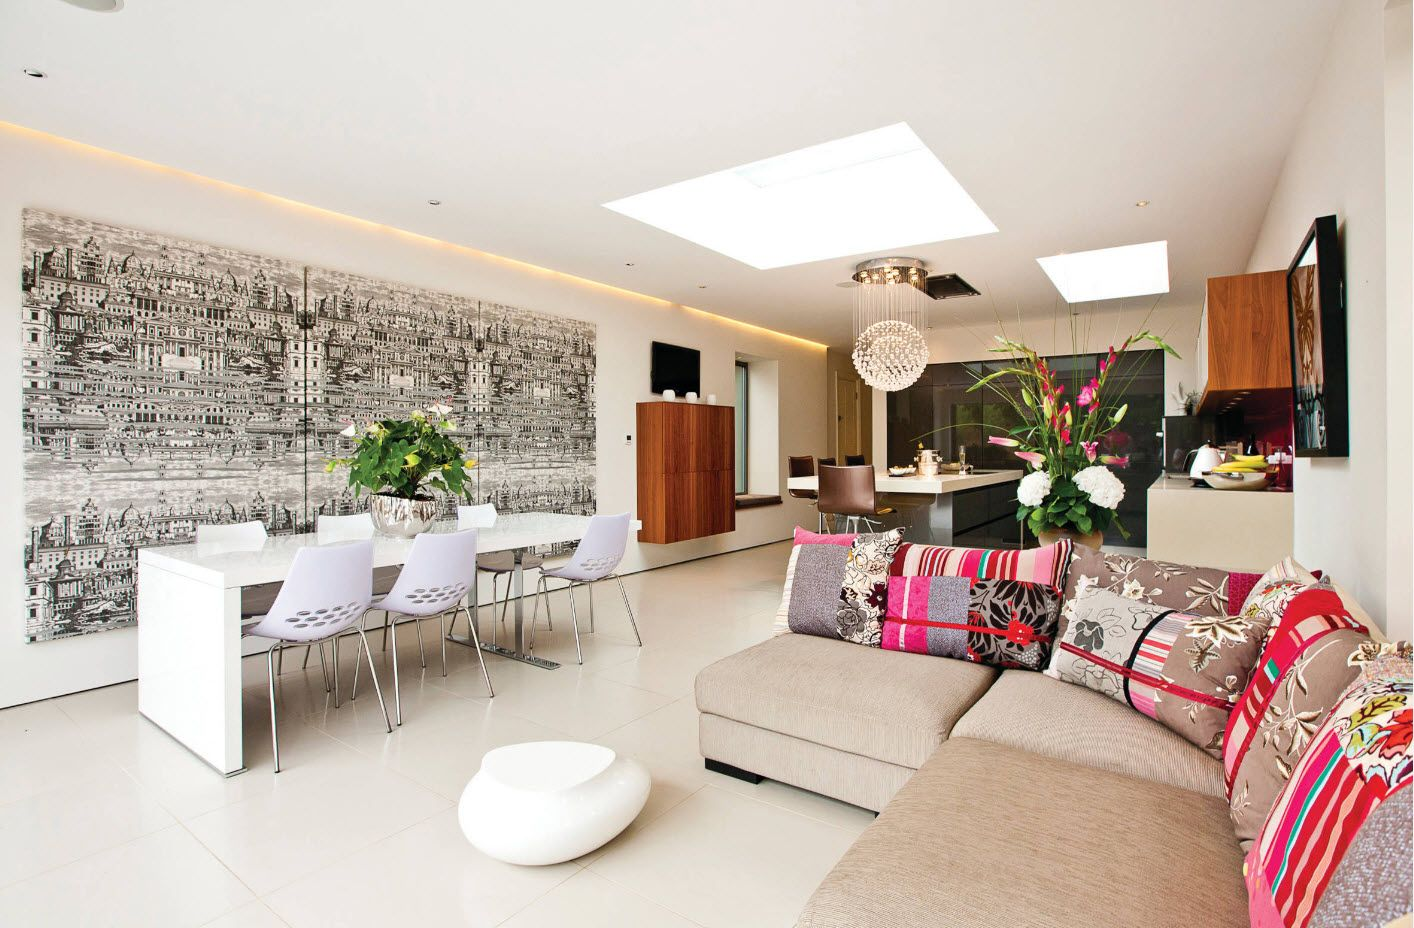 Ecological modern style to decorate spacious place